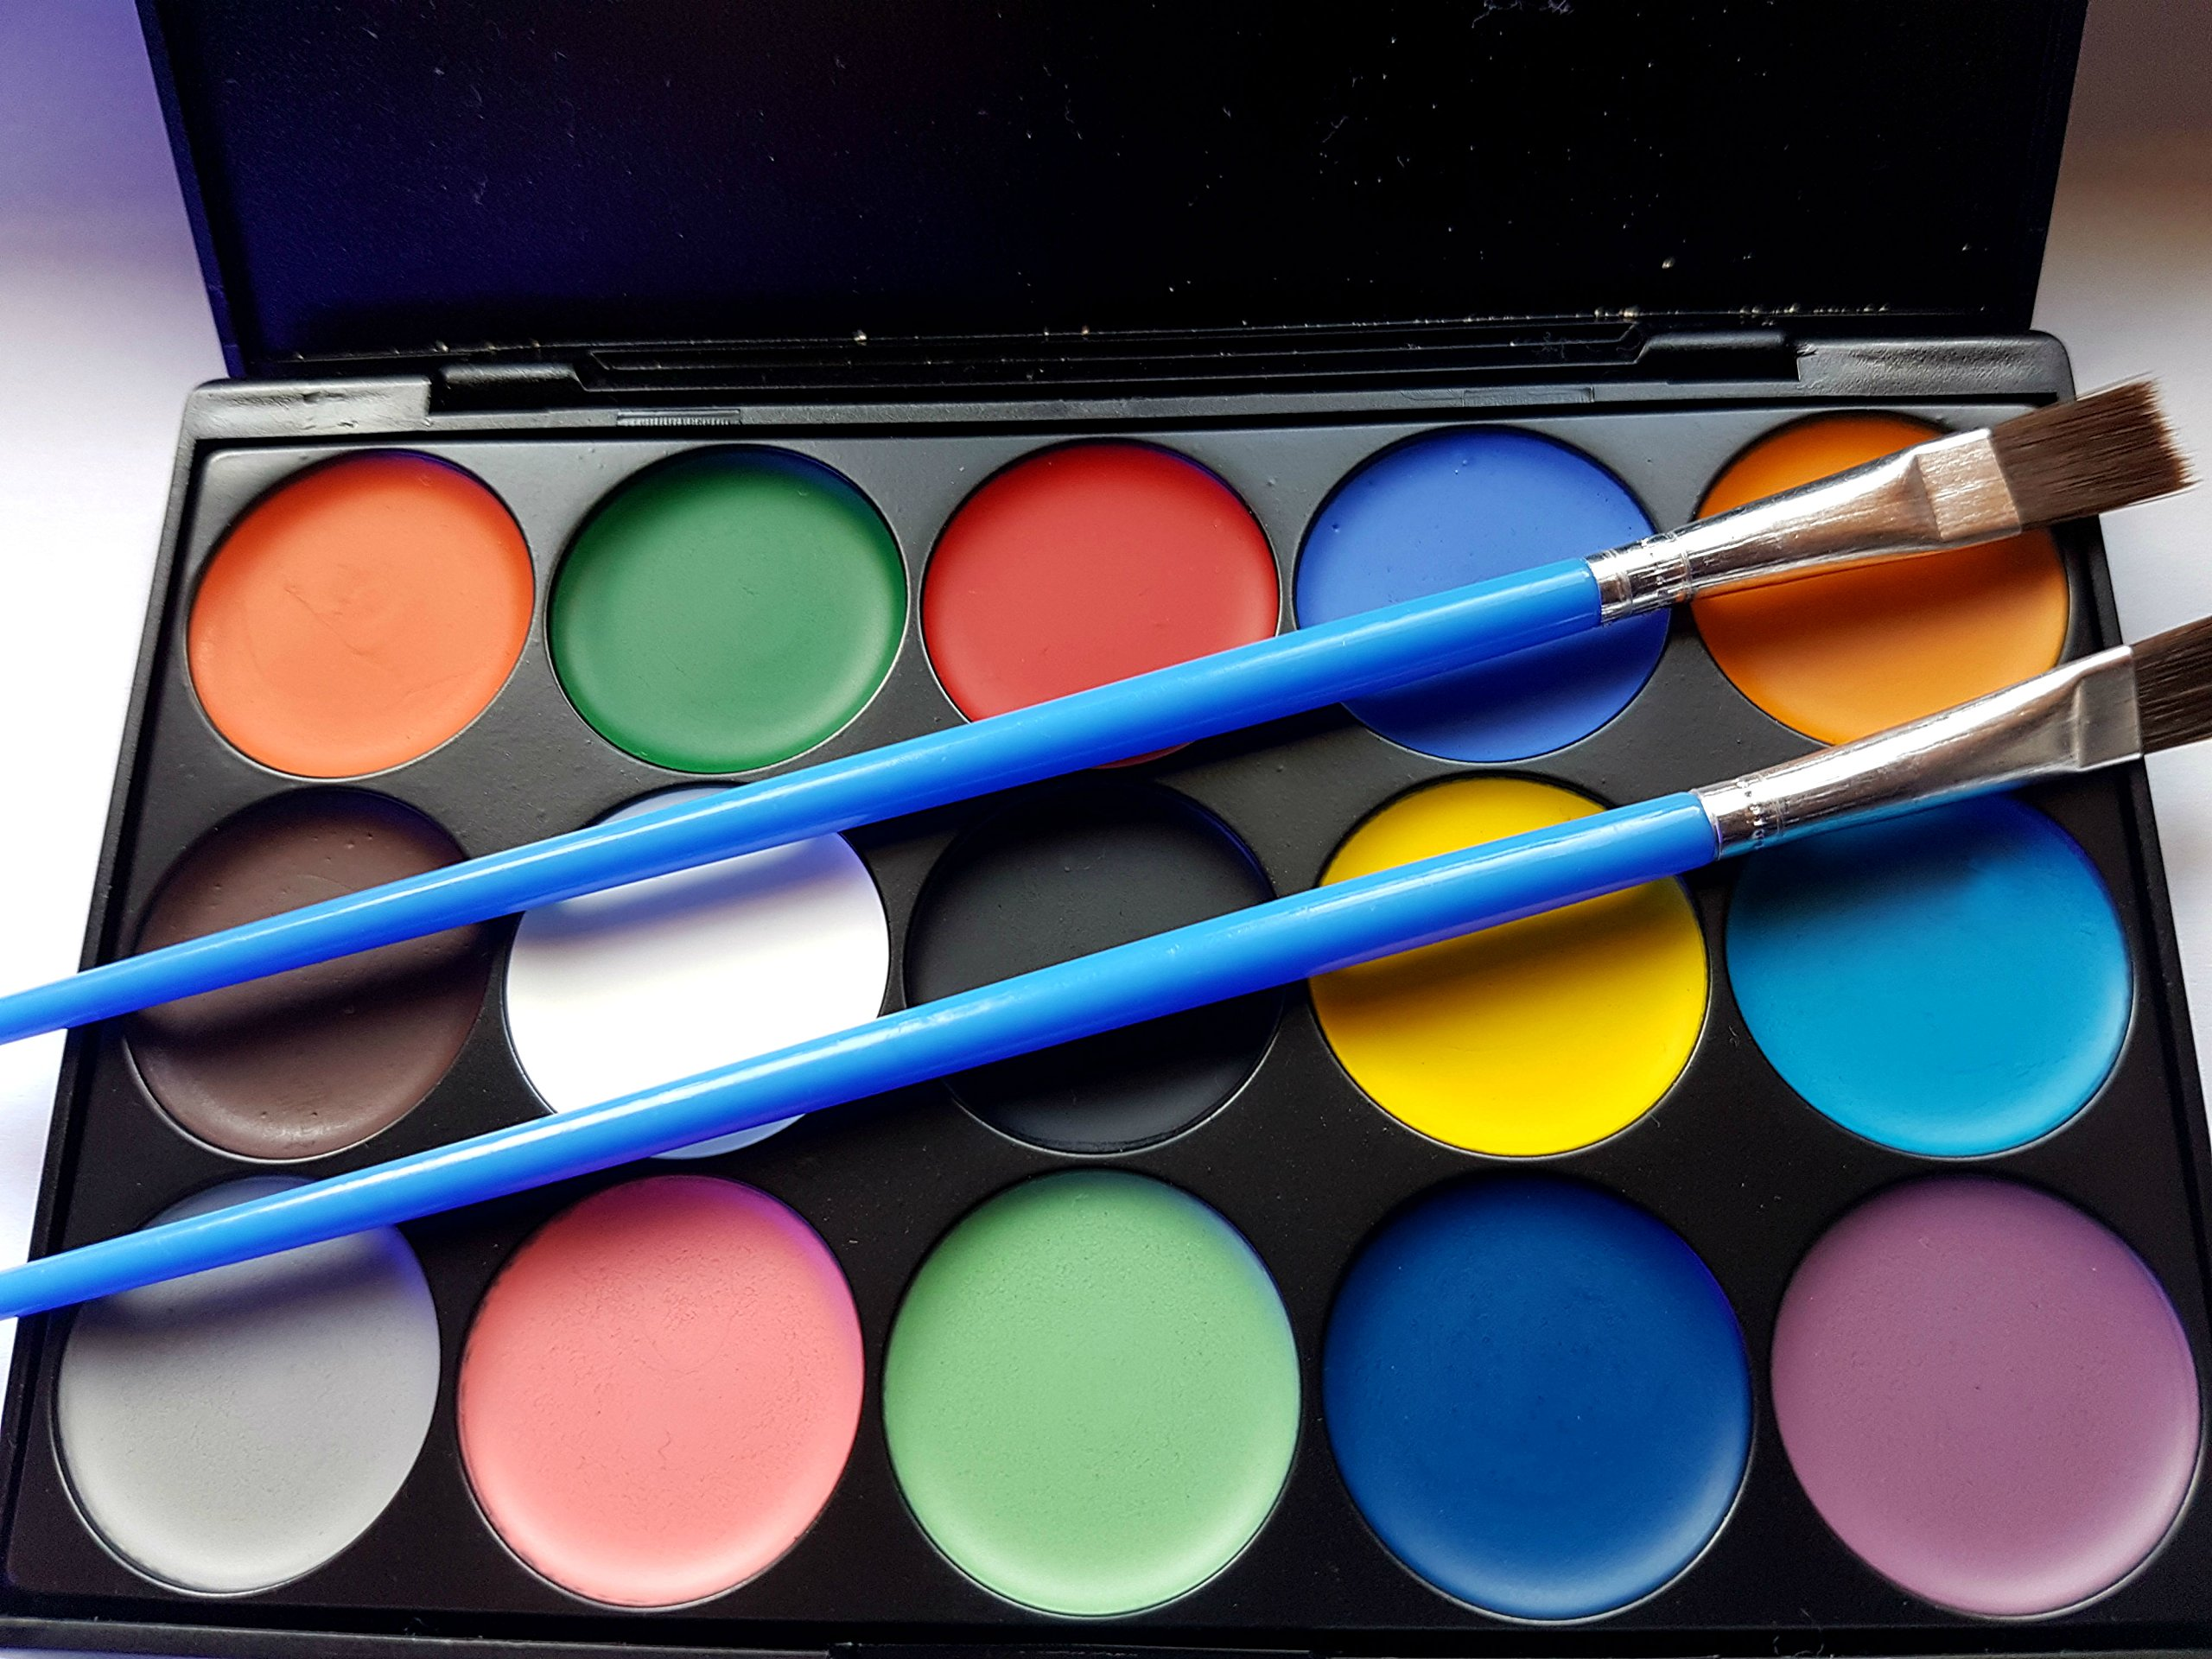 Face Paint | Face Paint Set 15 Color Palette | Professional Face Painting Palette with Premium Hard Carry Case | Paint Set Includes 2 Brushes & 24 Stencils | Water Activated Non Toxic & FDA Approved